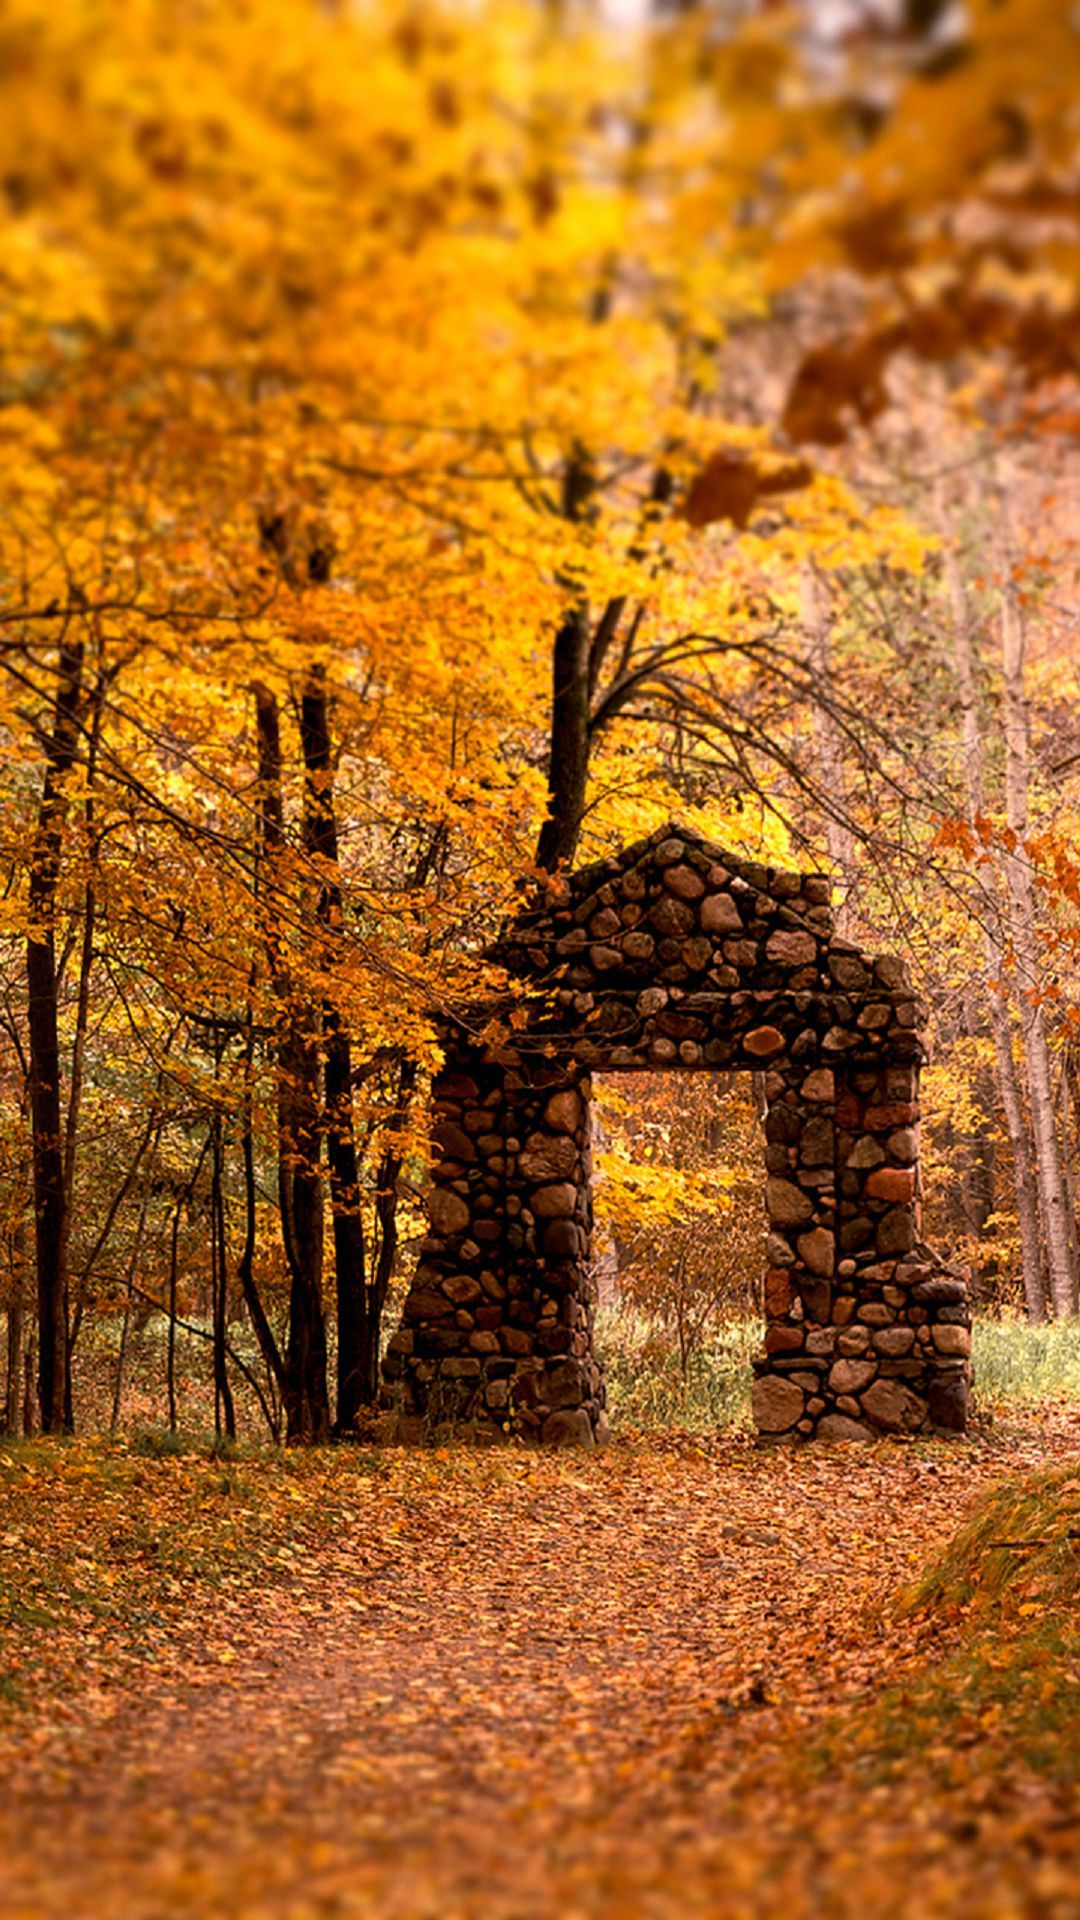 brick door autumn maple trees forest android wallpaper free download